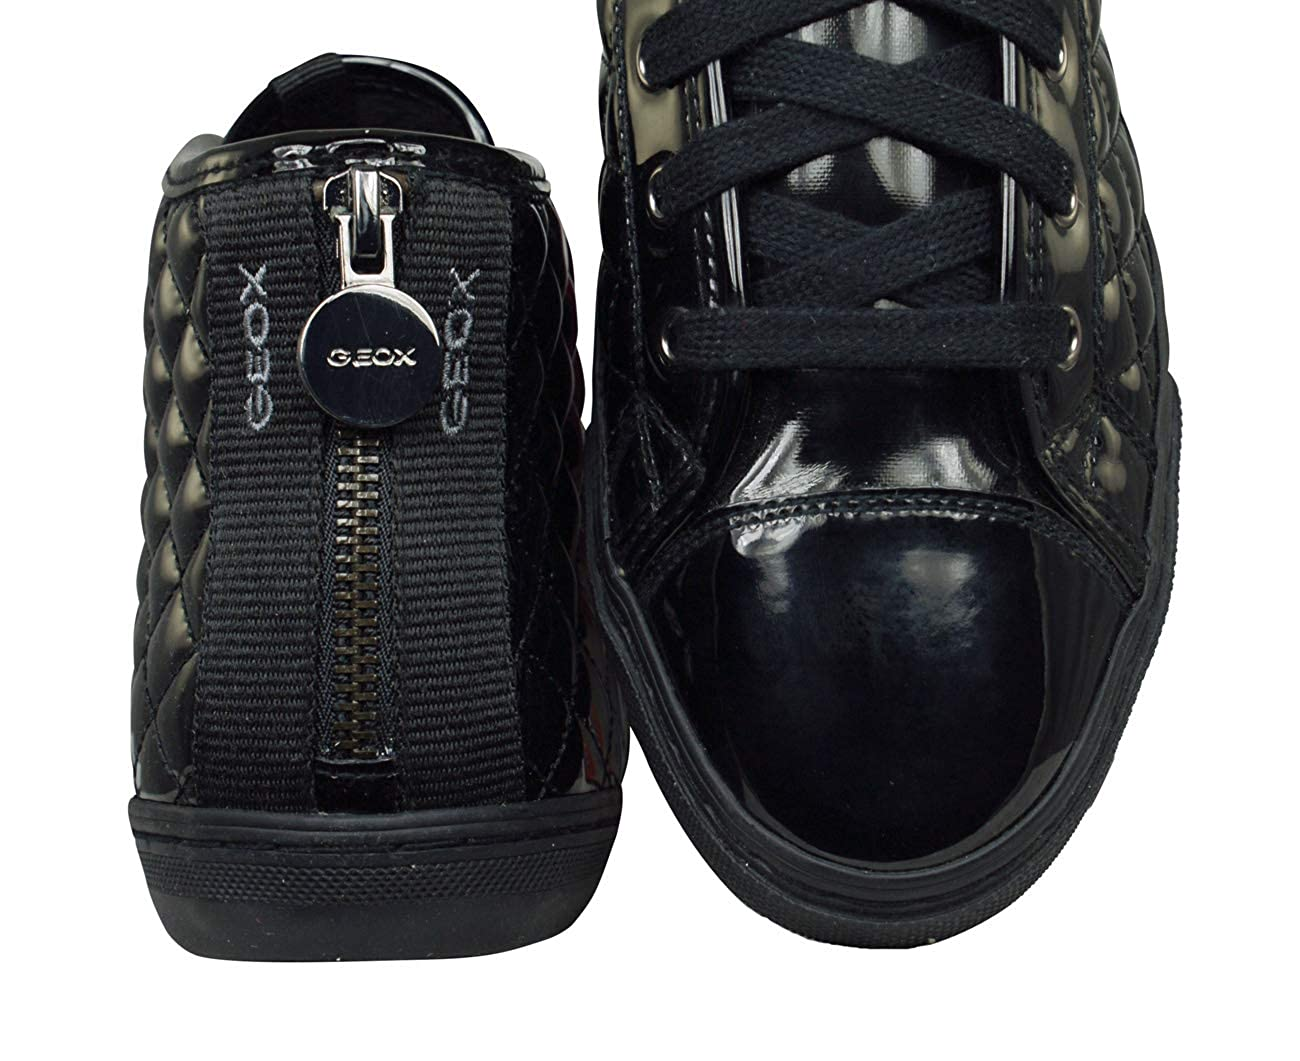 Geox Donna Sneakers Nere D4458D Scarpe in Vernice Inverno